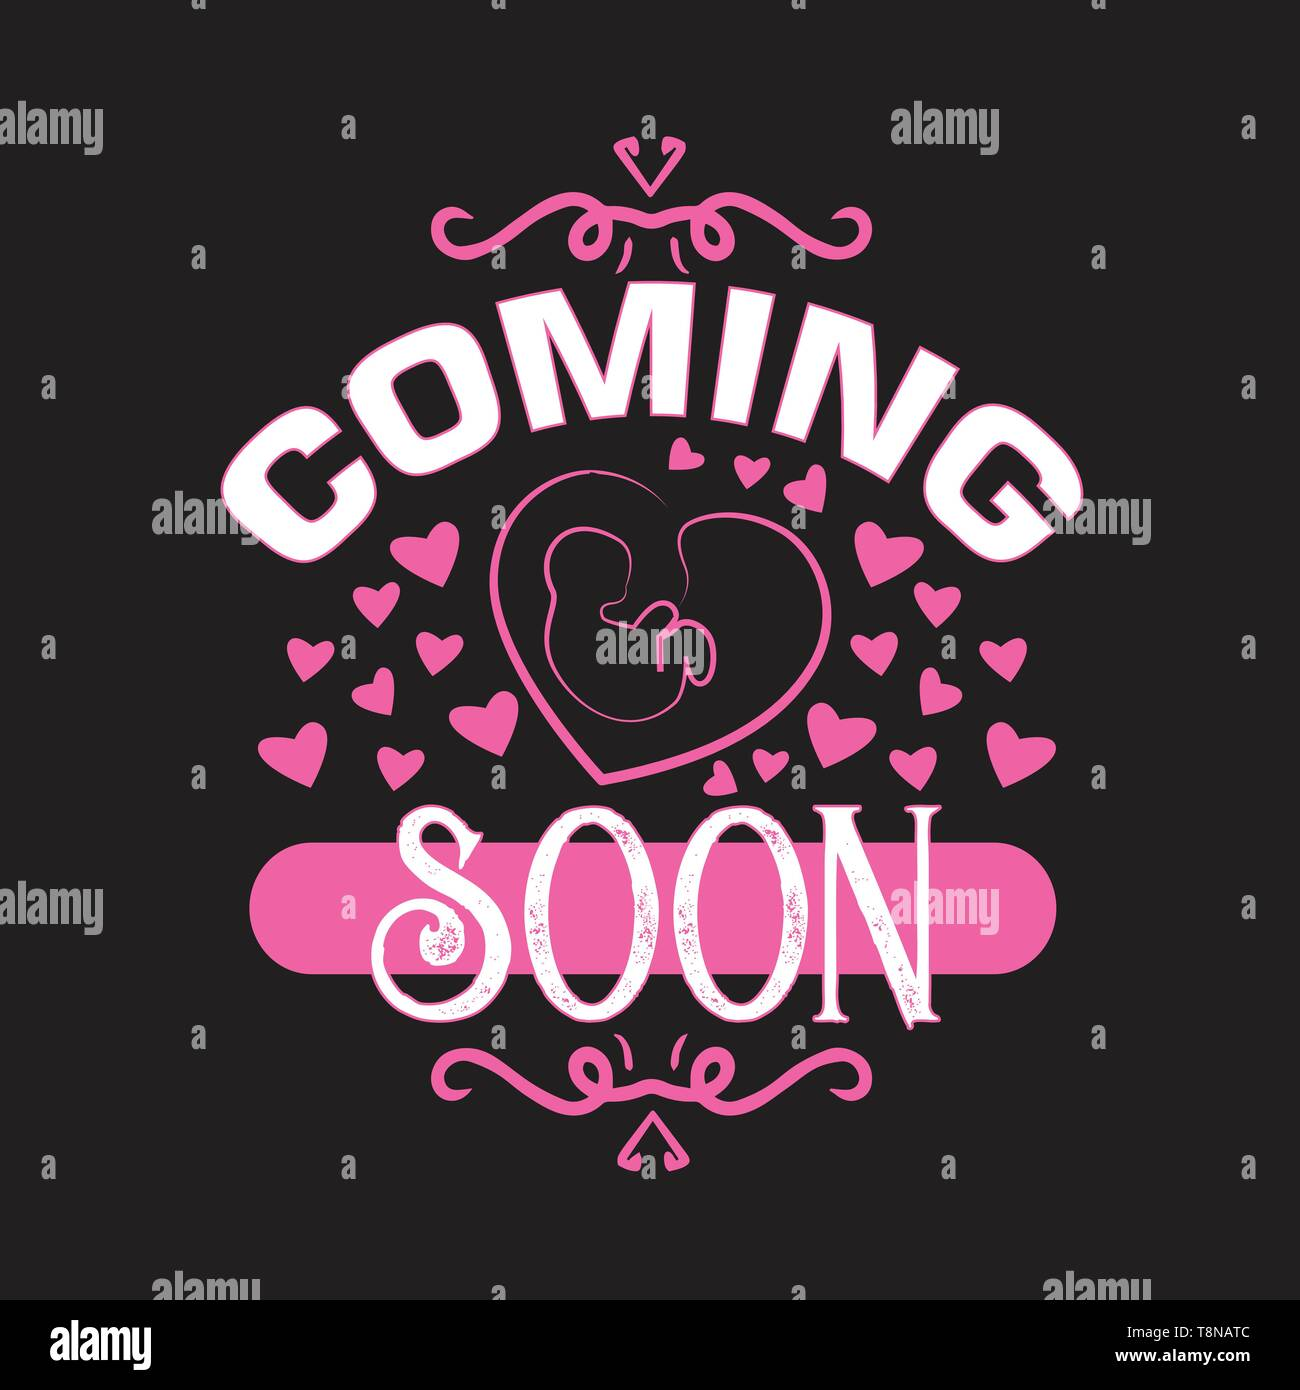 Pregnant Quote And Saying Baby Coming Soon Stock Vector Image Art Alamy